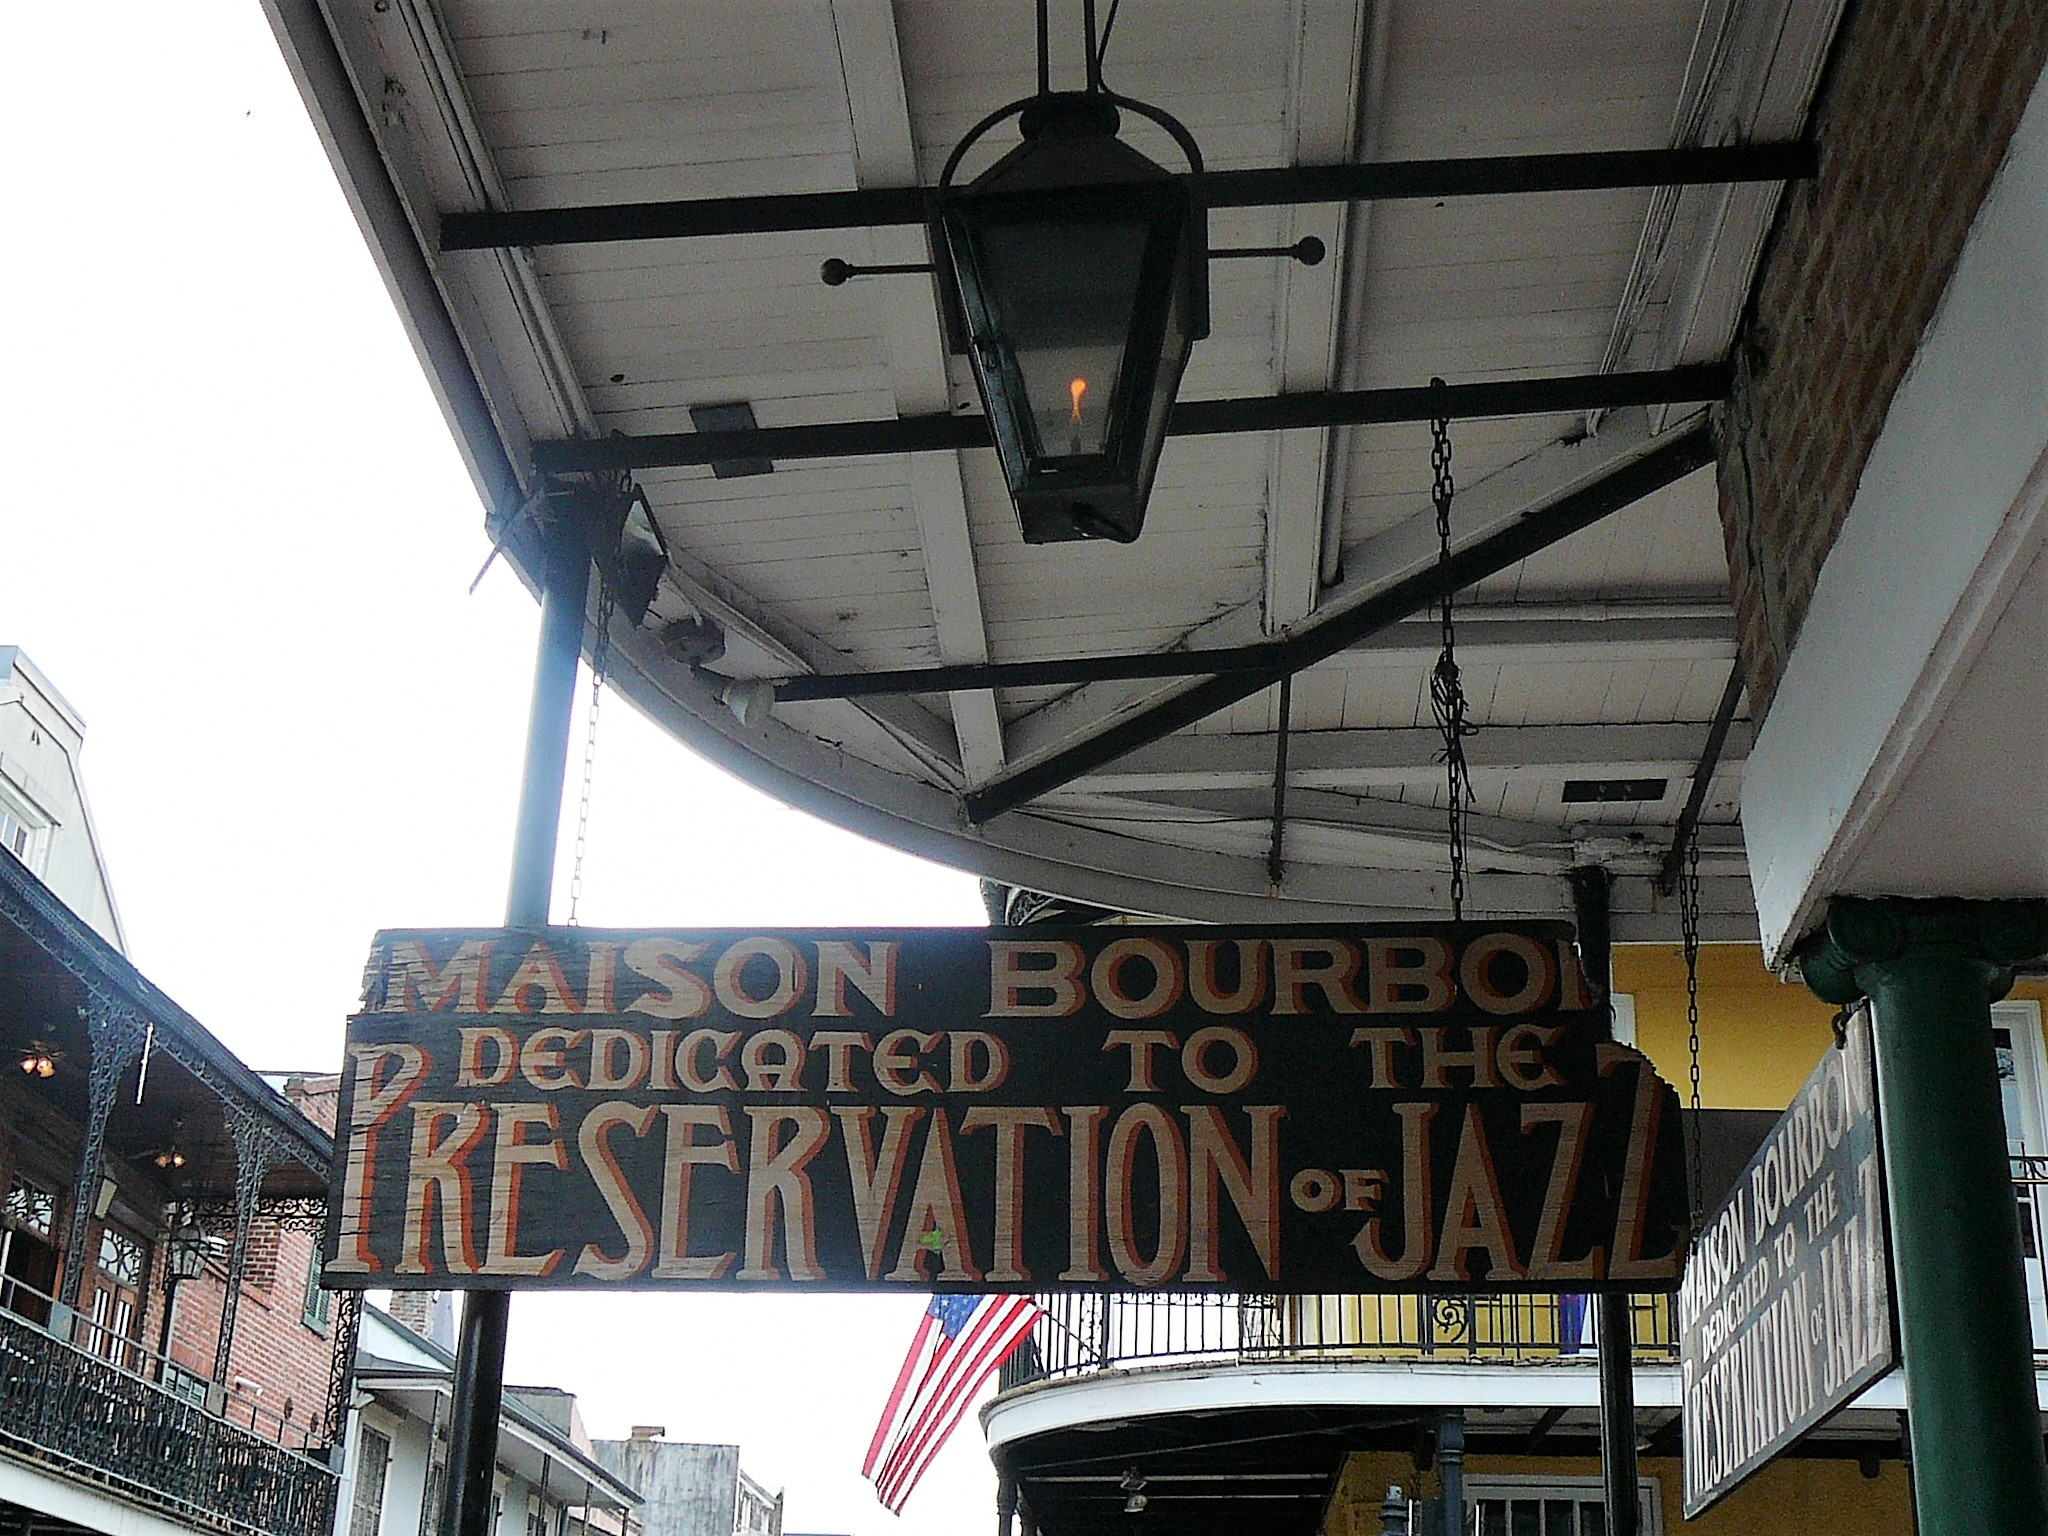 Bourbo Street Signs in New Orleans